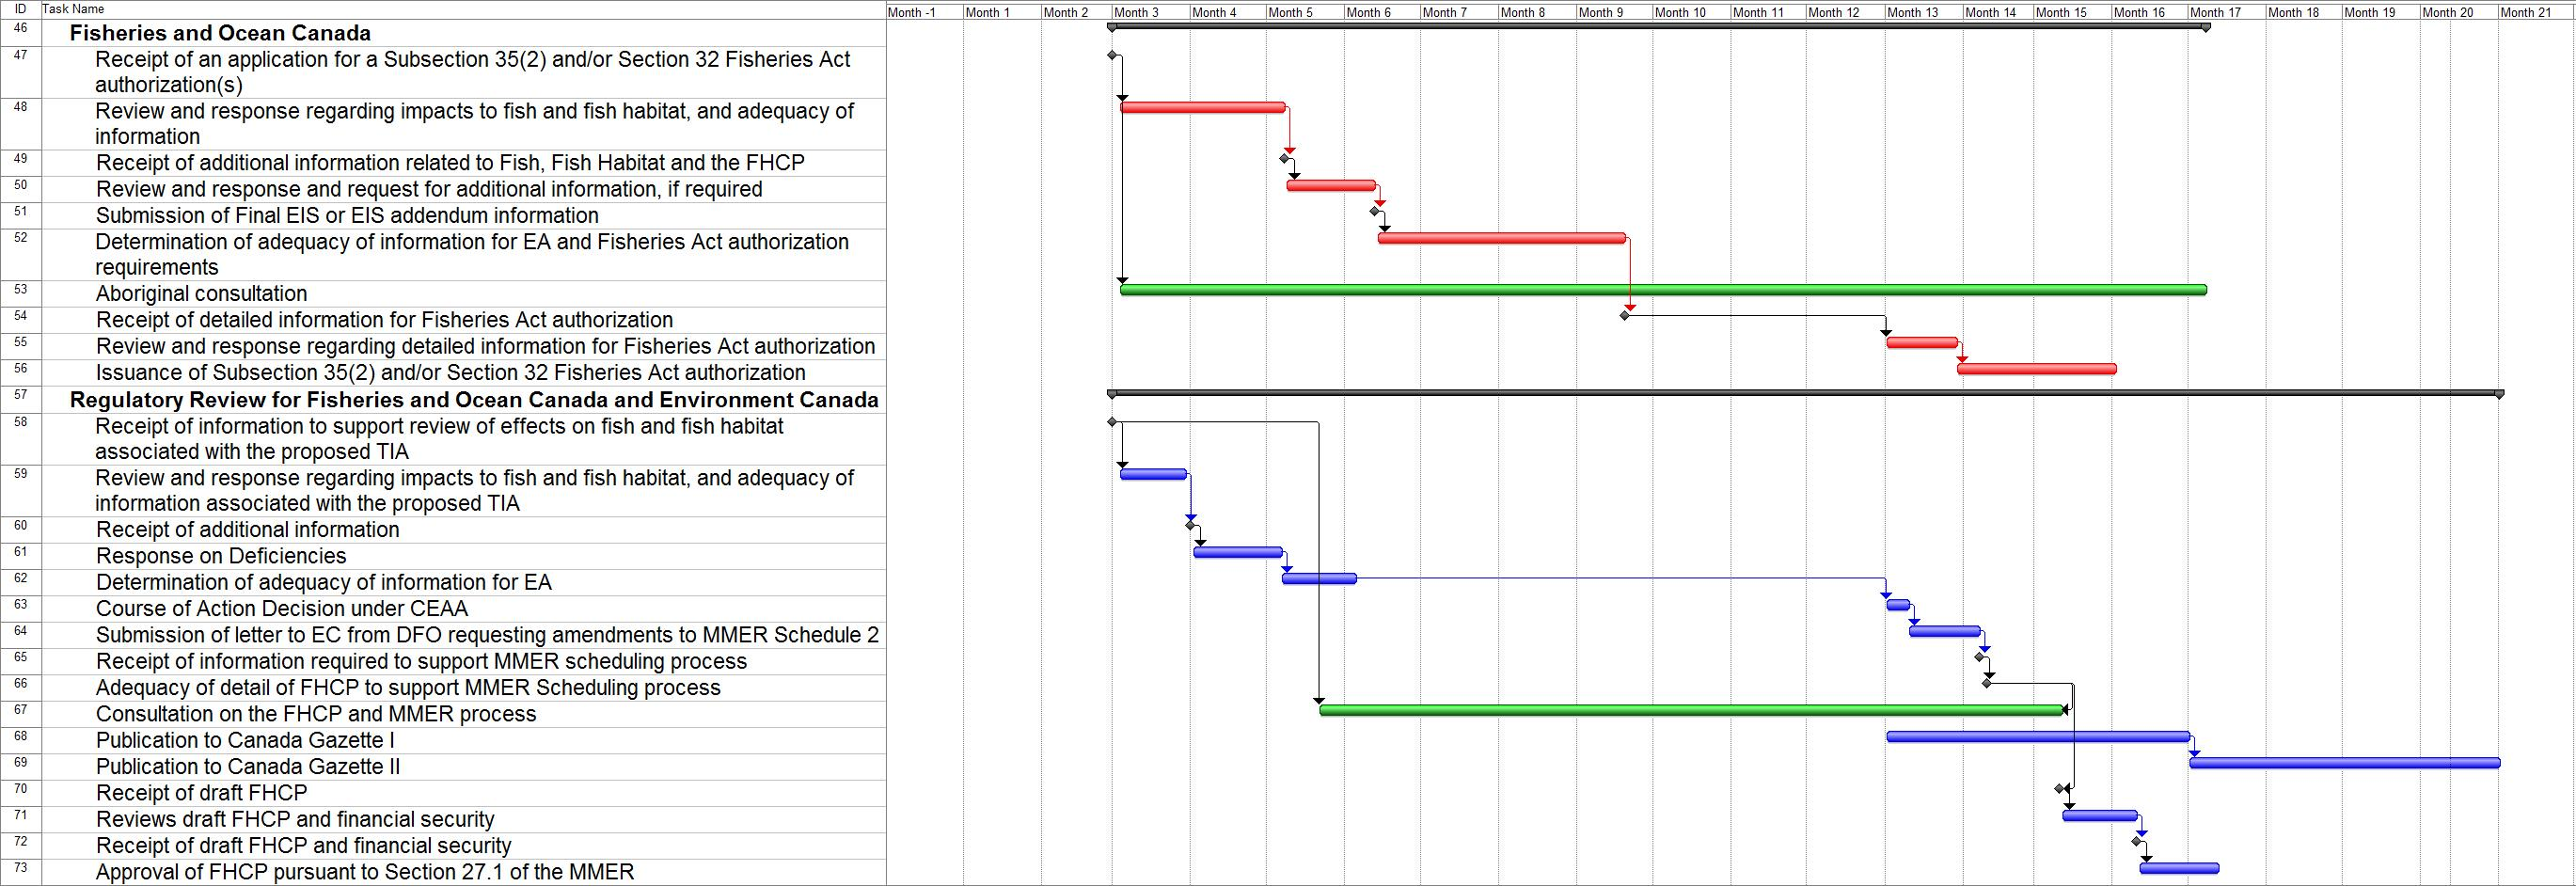 Gantt Chart - Target Timelines for the Regulatory Phase